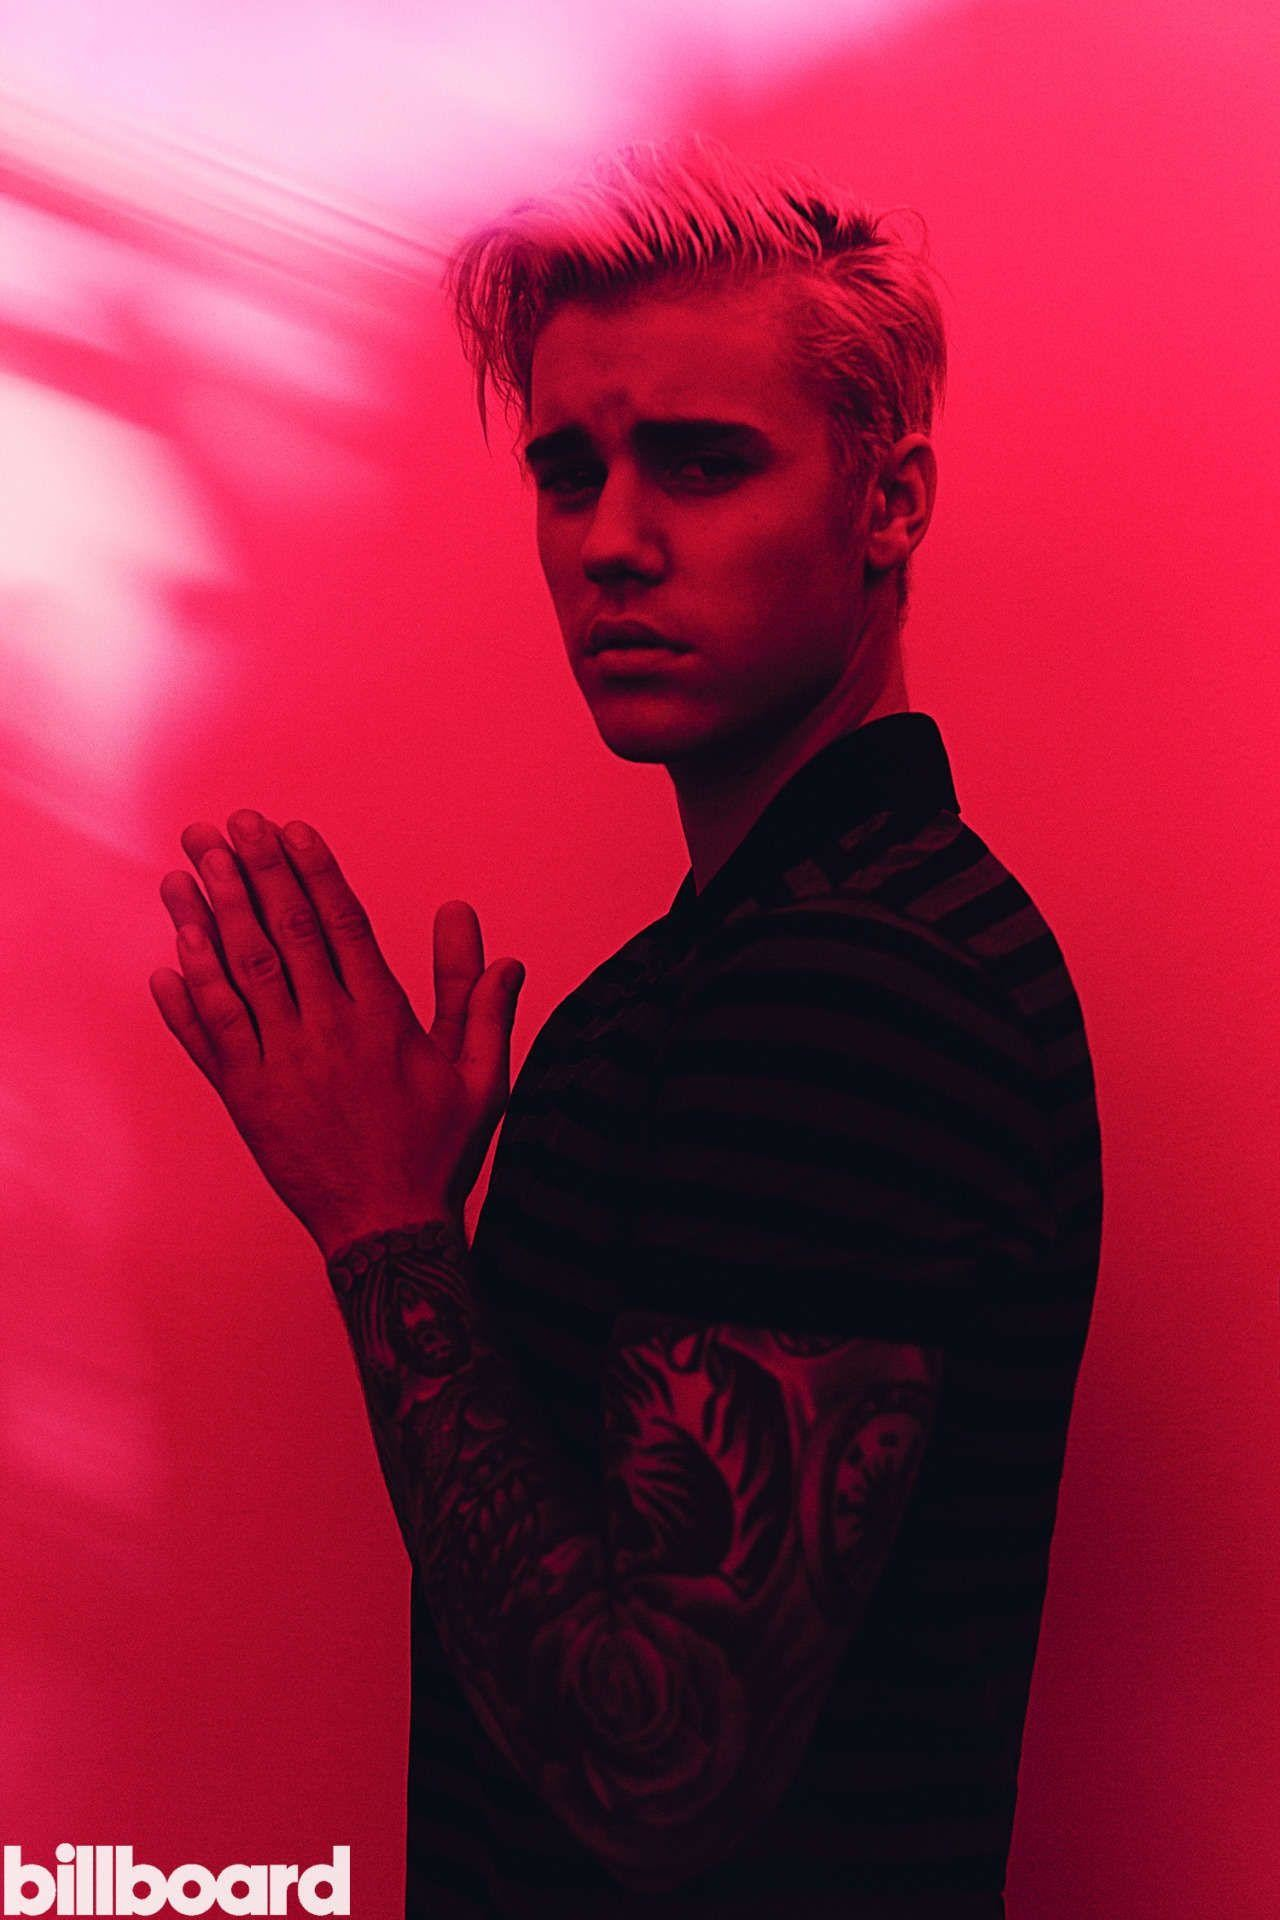 Wallpaper Of Justin Bieber 2018 62 Pictures